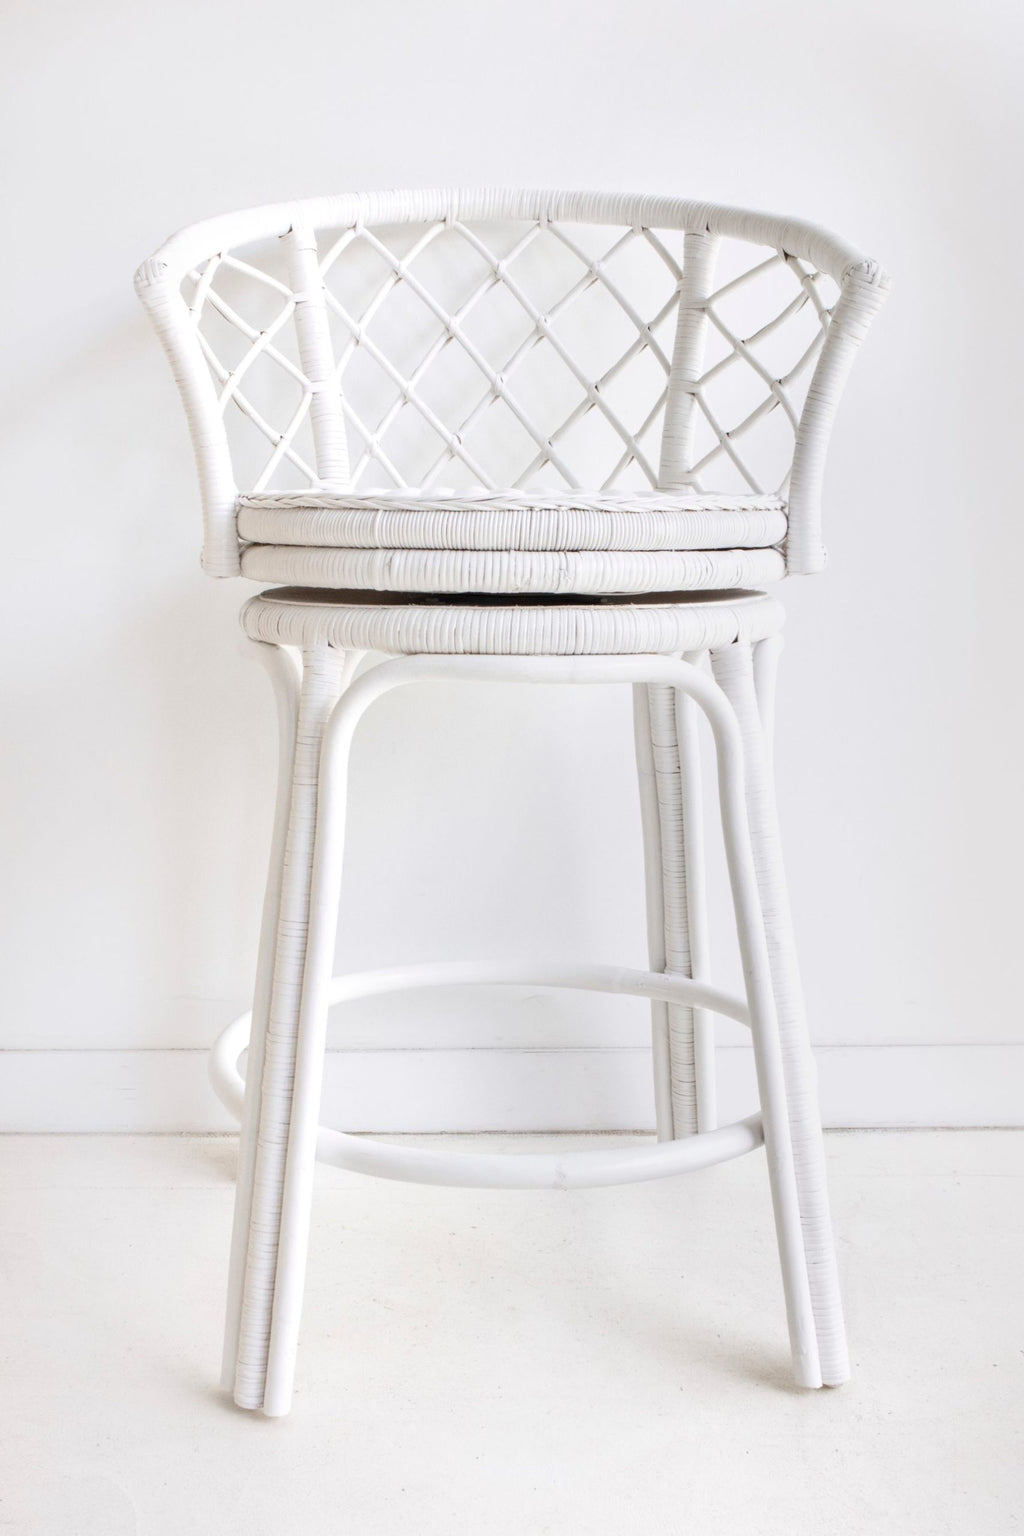 Coastal Swivel Stool - White